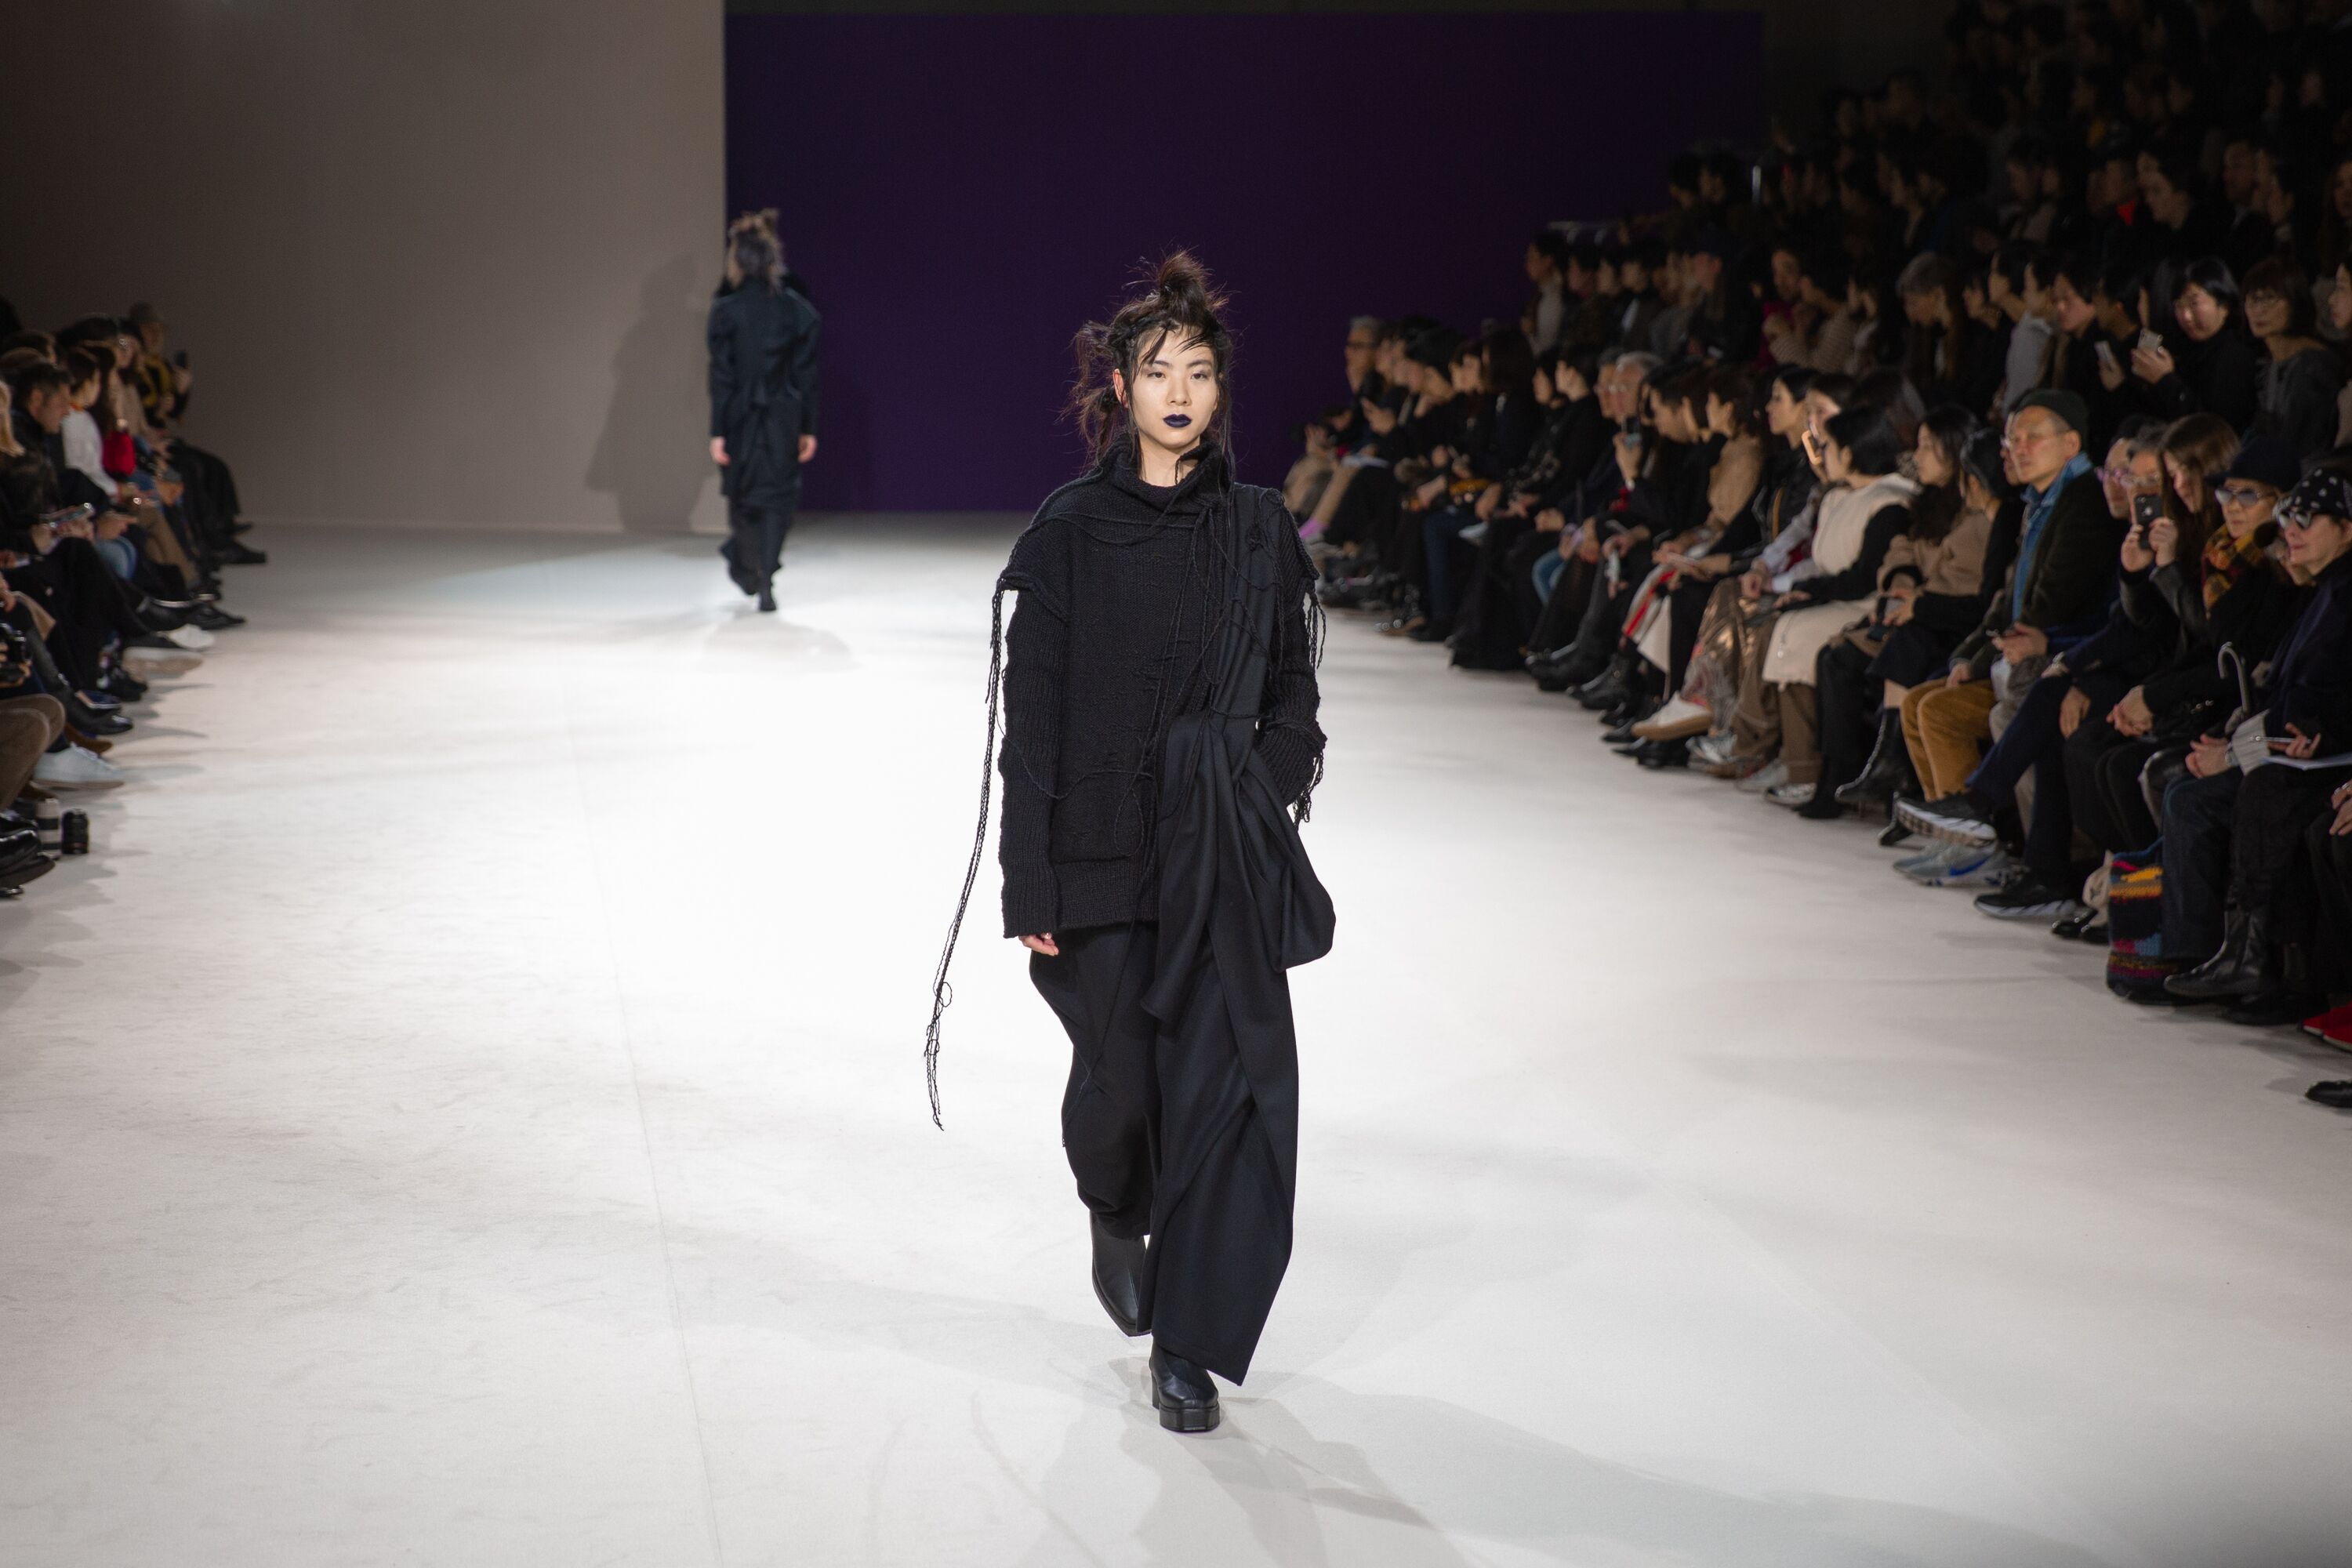 Yohji Yamamoto textured long length black dress aw19 paris fashion week